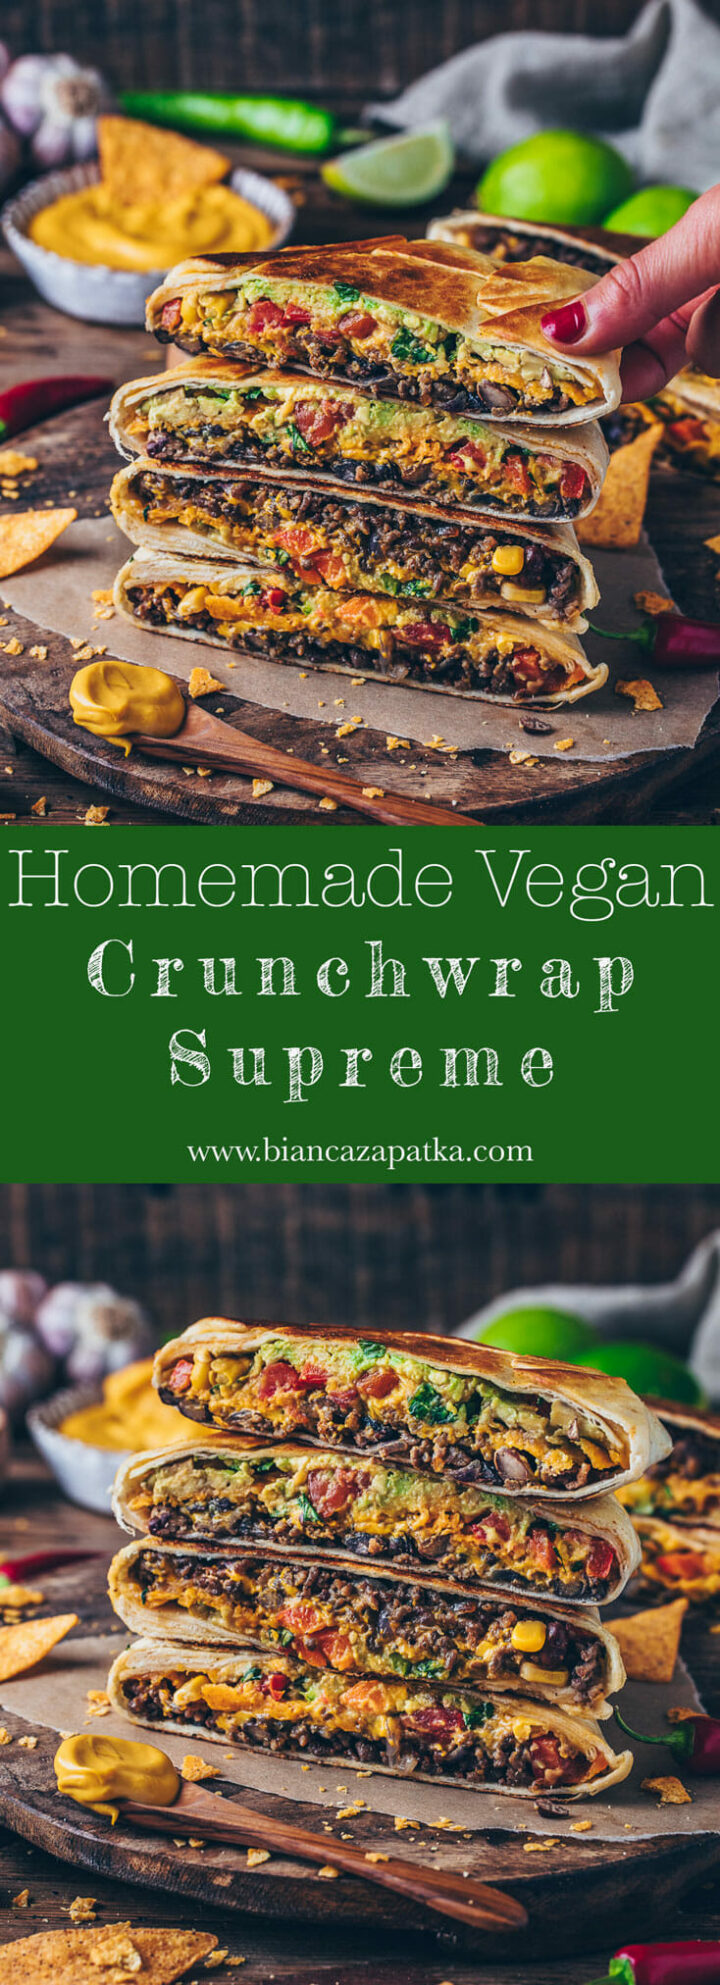 Vegan Crunchwrap Supreme with burrito taco meat filling, easy vegan nacho cheese sauce, tomatoes, red bell pepper, corn, beans, avocado